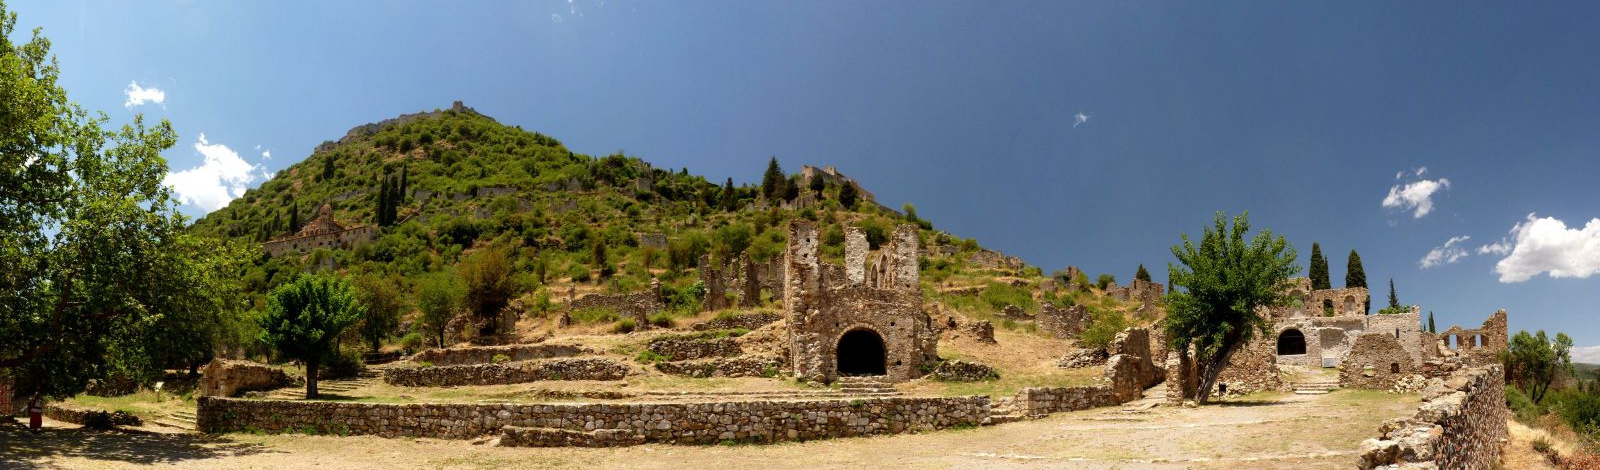 """Mystras - Lower City "" by Ronny Siegel on Flickr (CC-BY-2.0)"